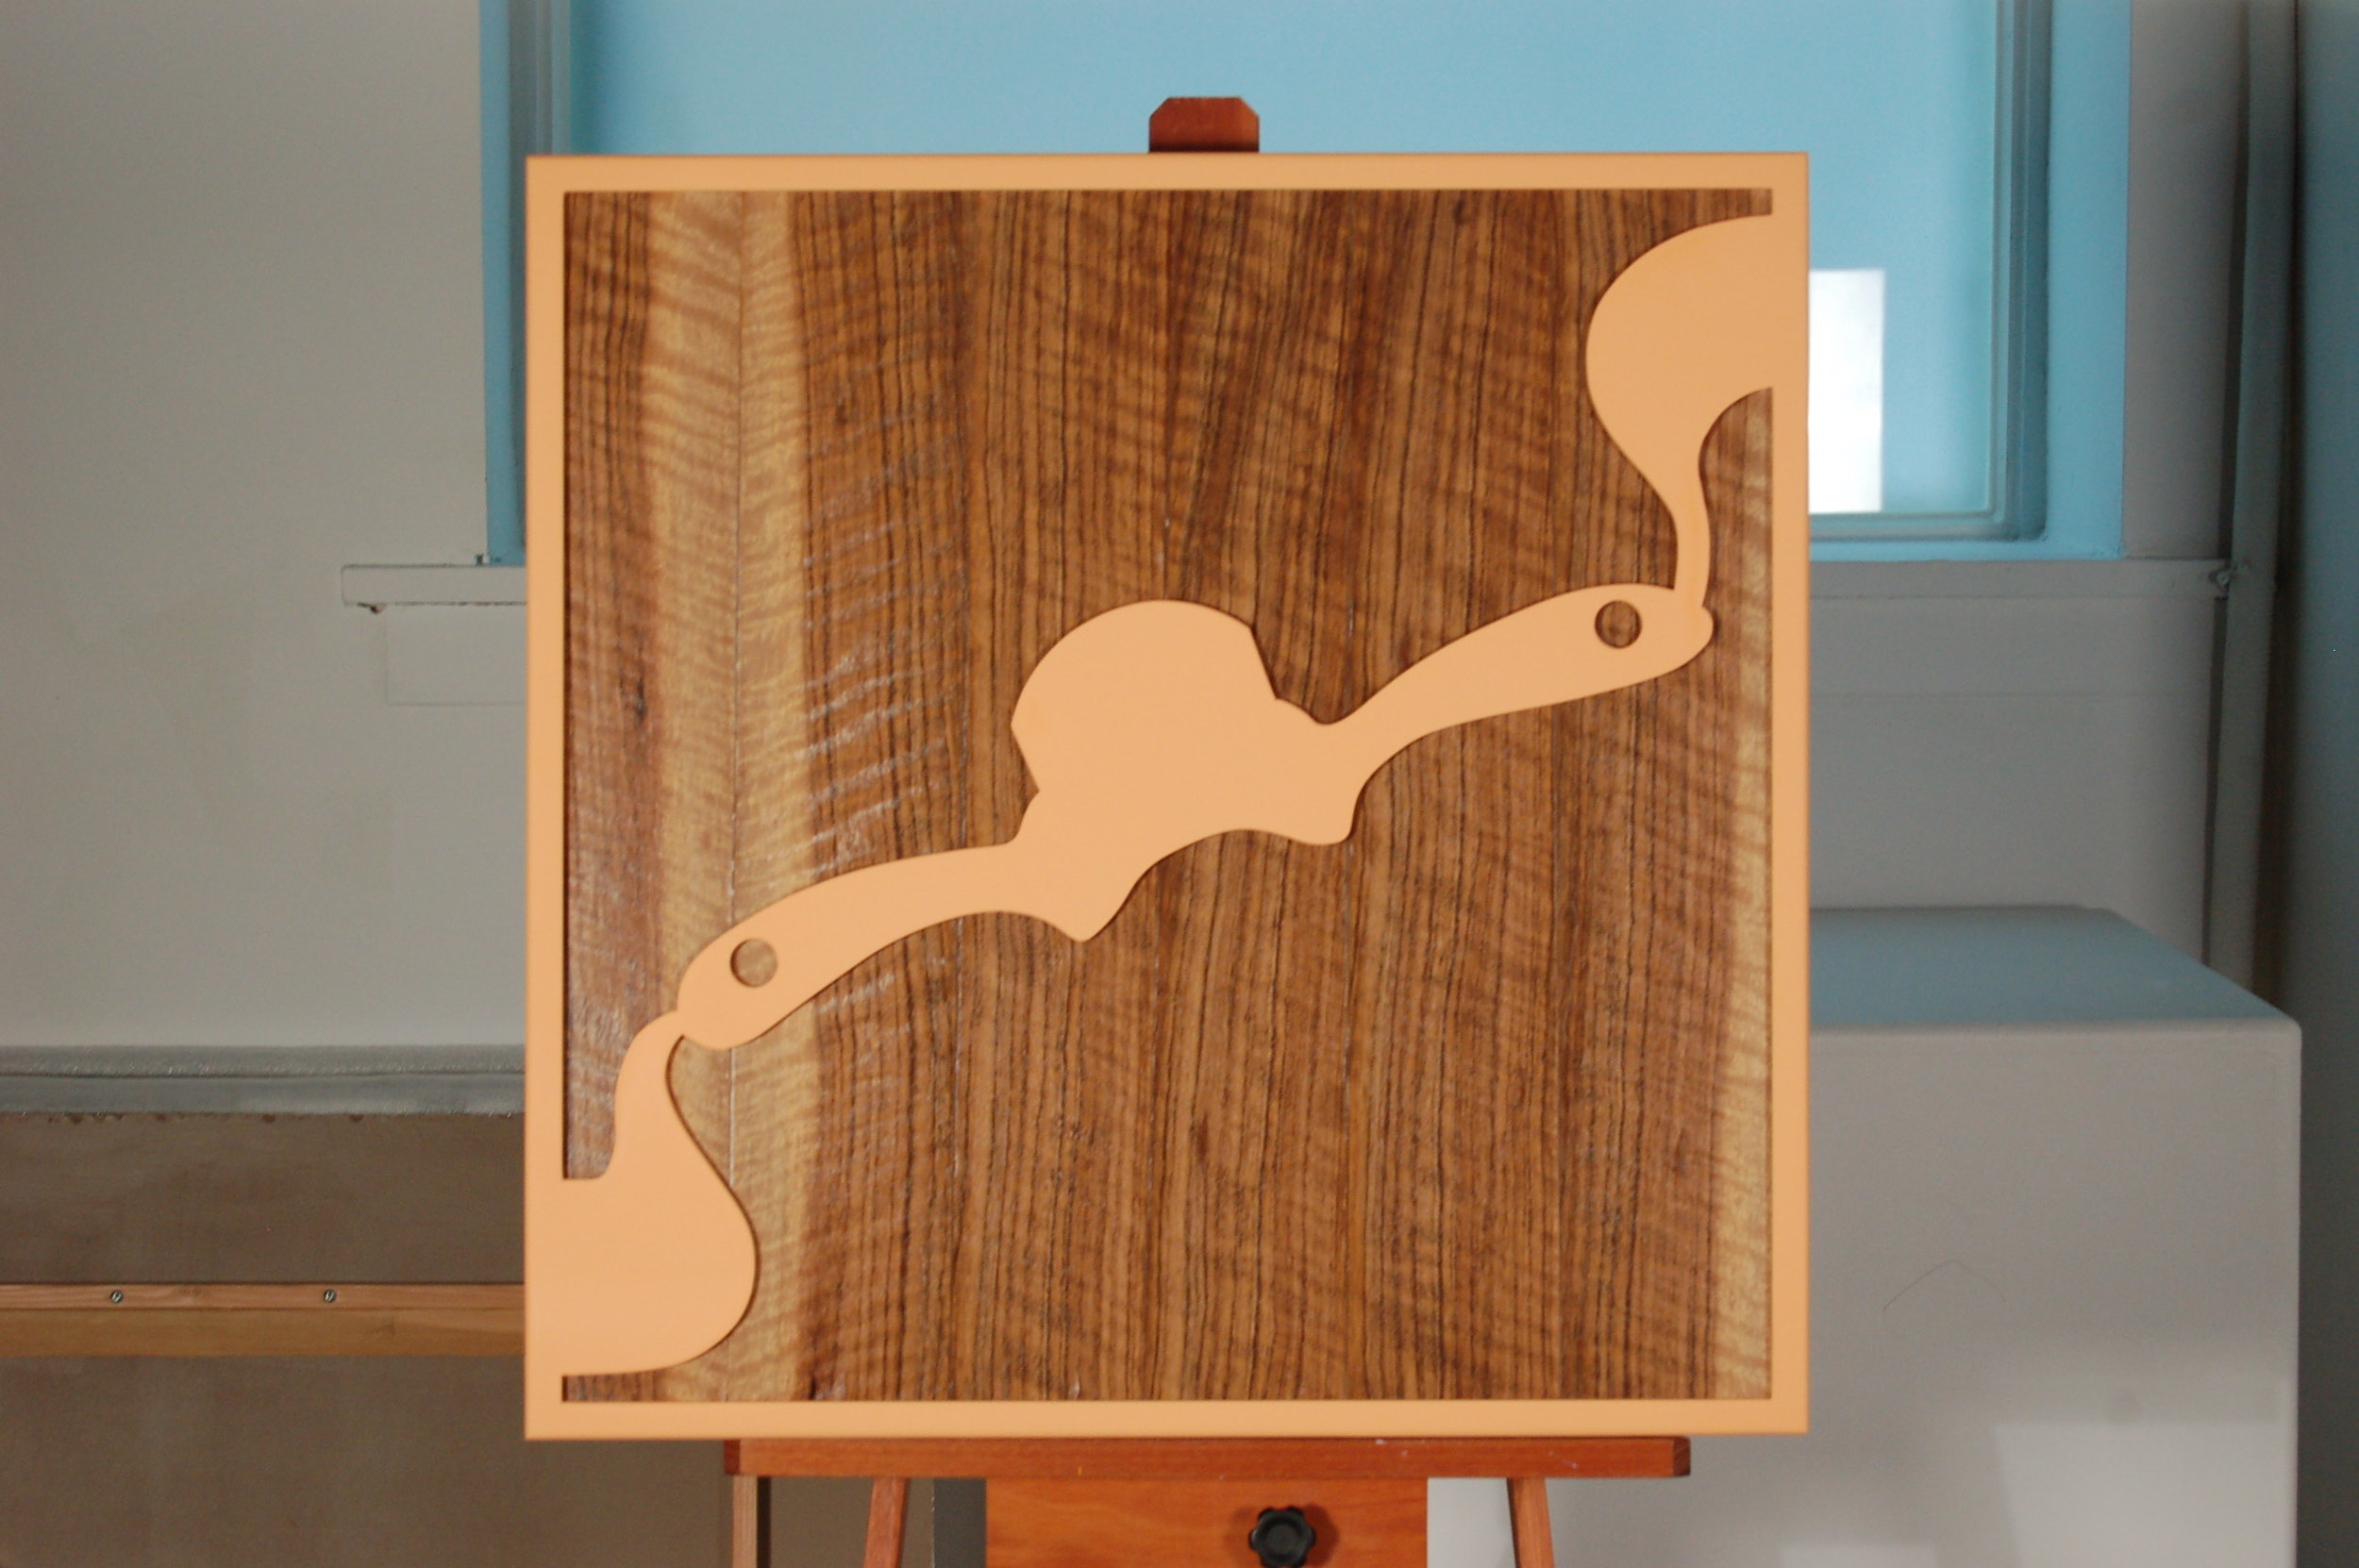 KH-009, The Spokeshave That Made the Frame, Figured Mozambique, wood panel, acrylic paint, 27x27, 2015.JPG